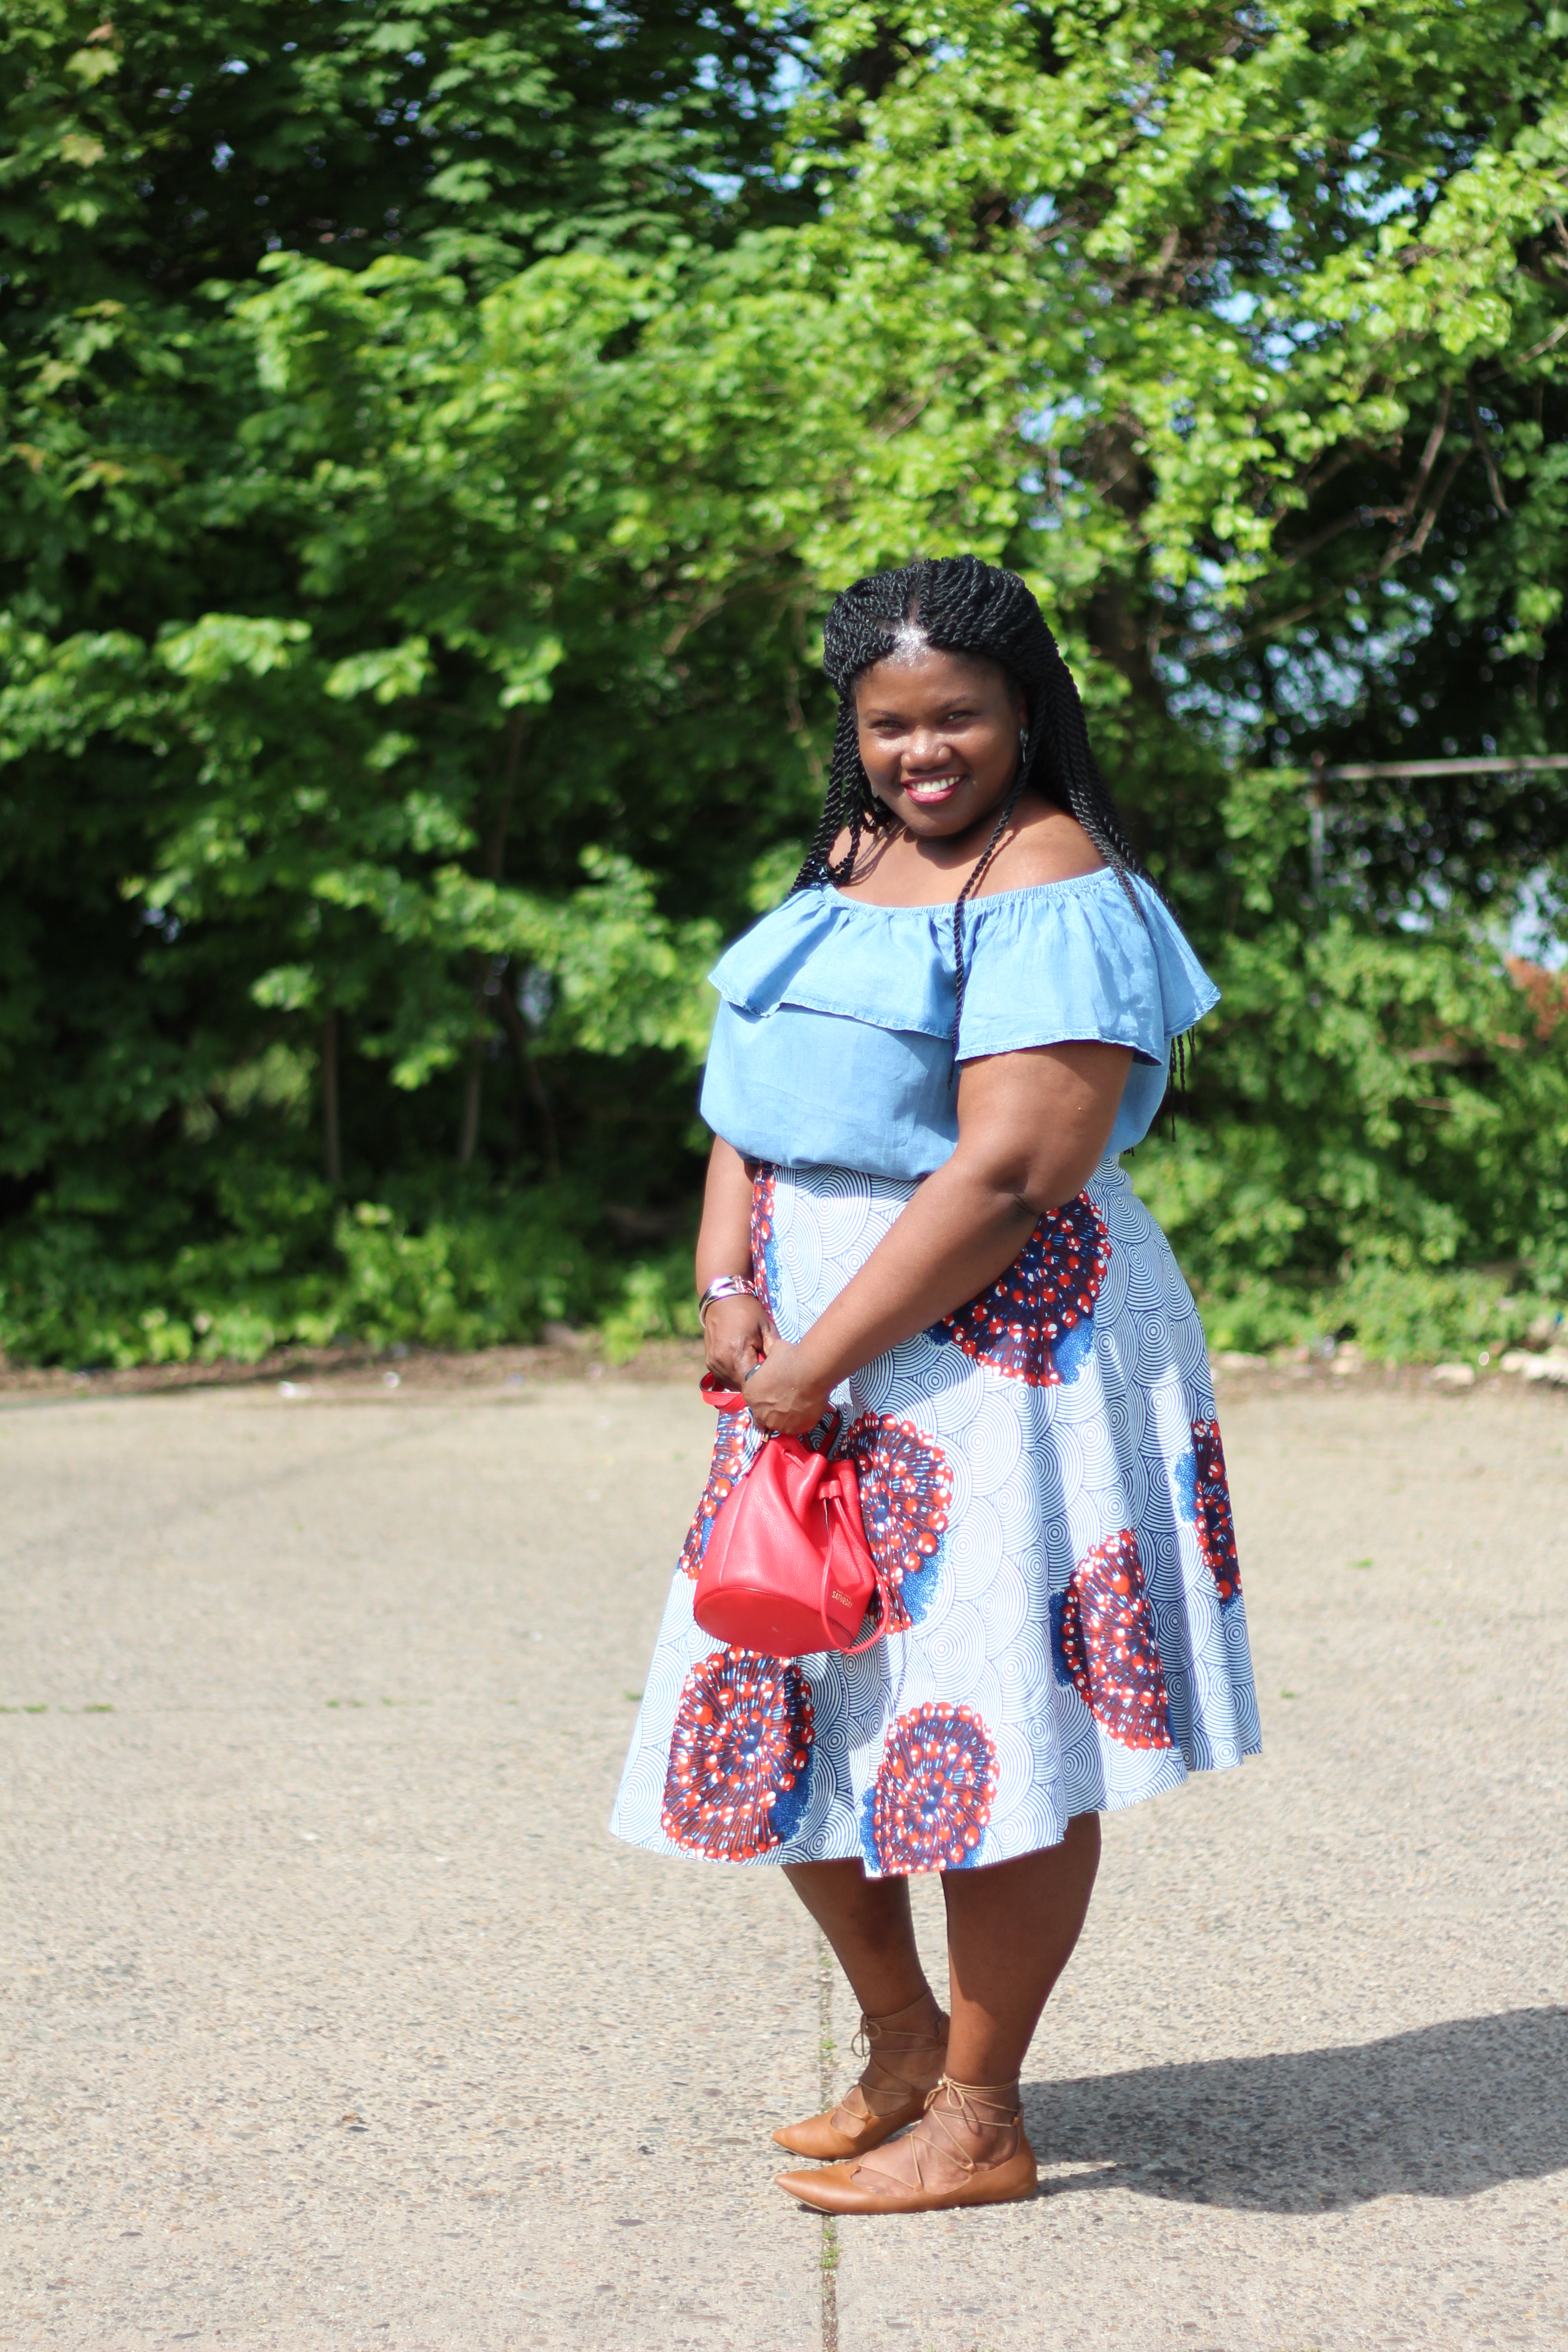 midi skirts, off the shoulder tops, summer trends, pattern skirts, african print skirts, plus size skirts, asos, mini bags, mini bucket bags, lace up flats, nordstrom, curvy, curvy women, curvy blogs, curvy bloggers, plus size blogs, plus size bloggers, natural hair, grown and curvy woman, blogs for women over 40, over 40 blogs, over 40 bloggers